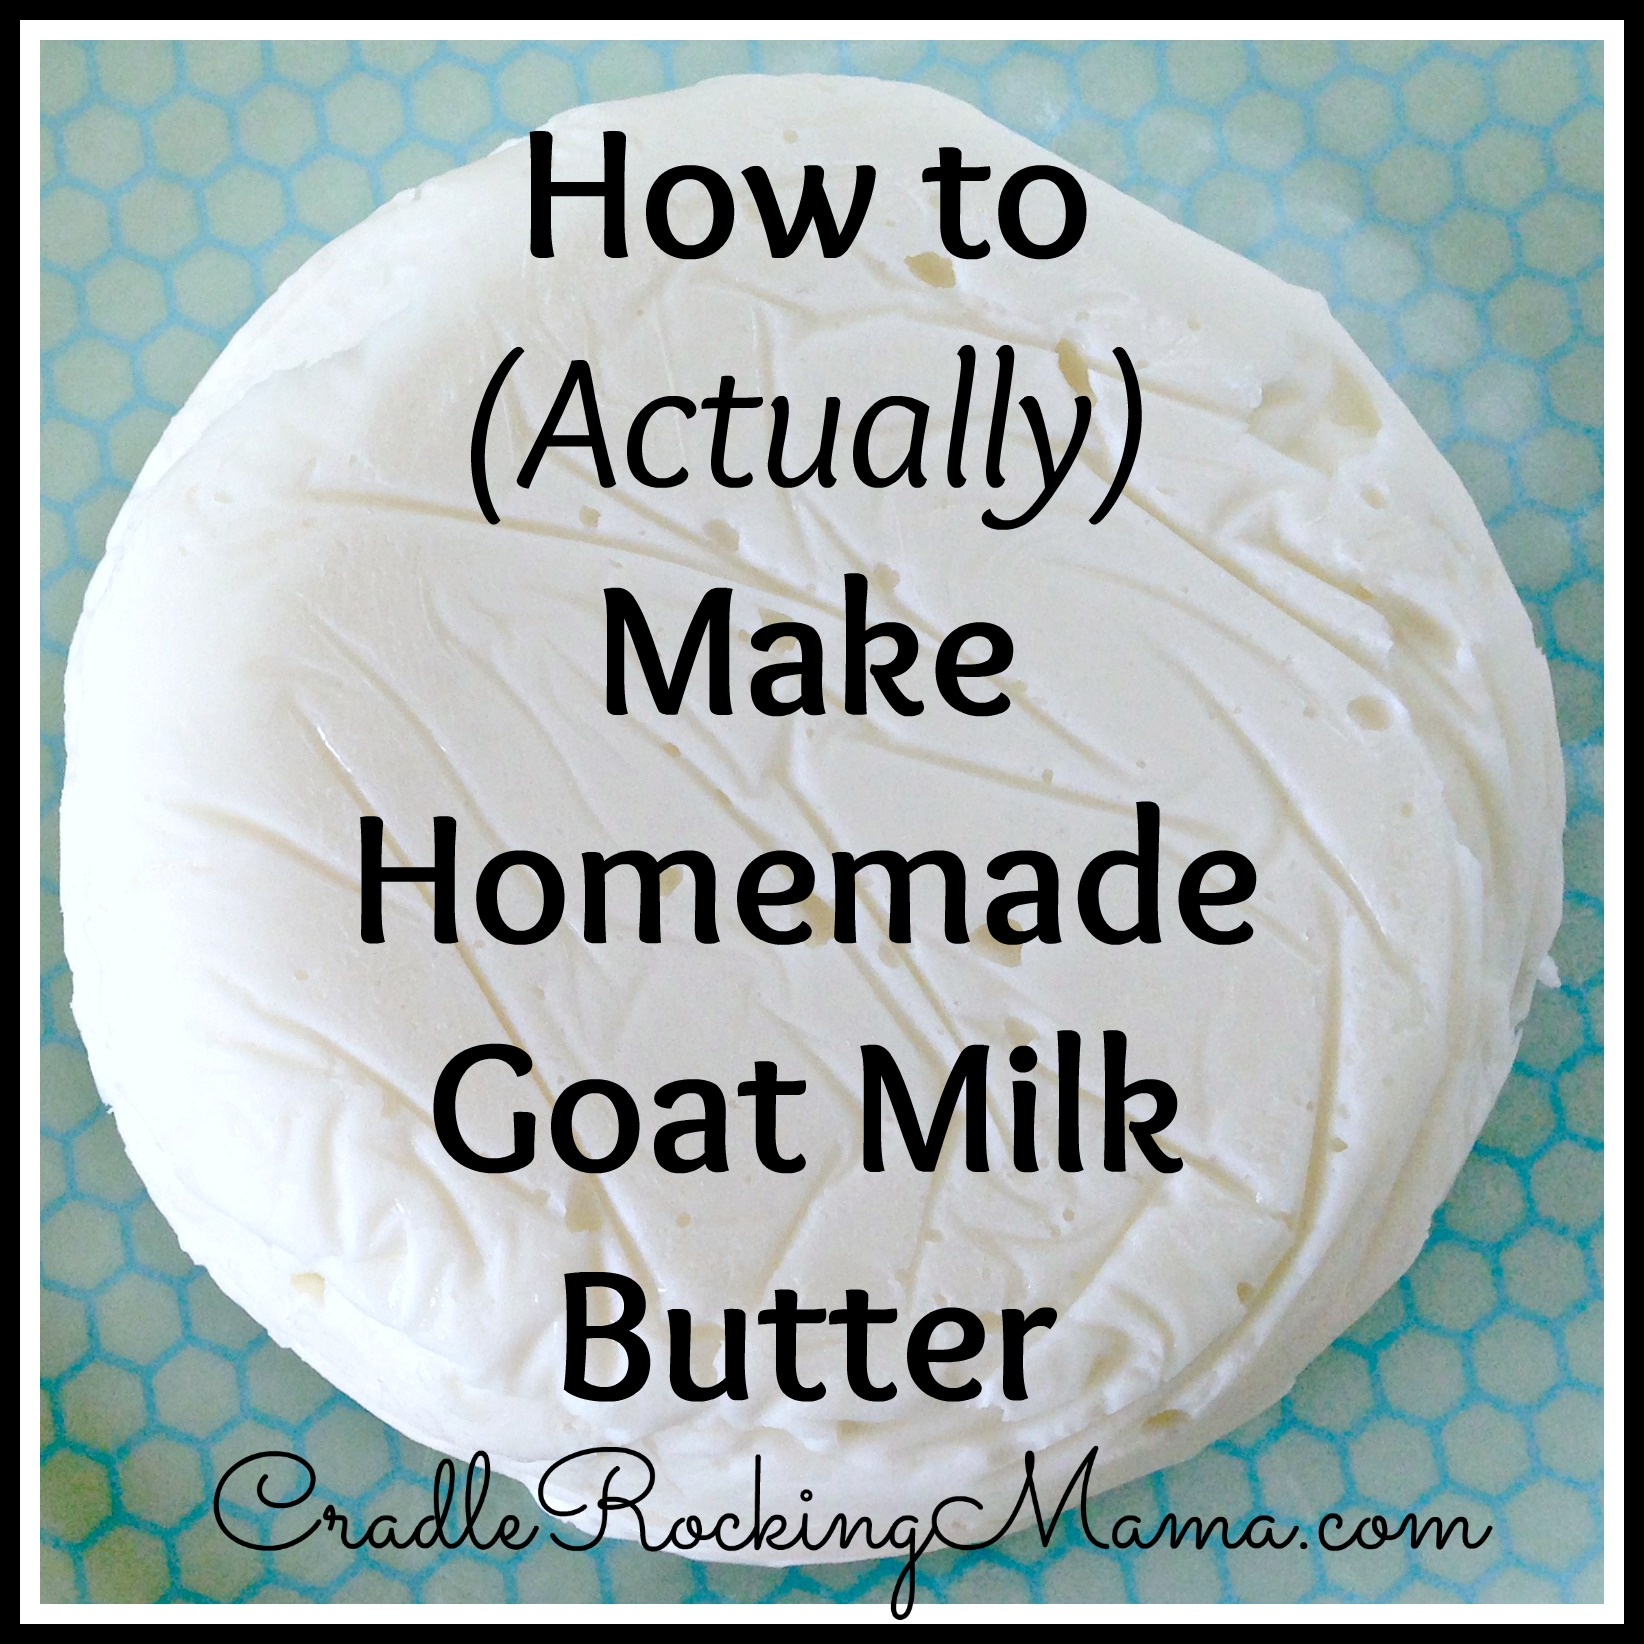 How to (Actually) Make Homemade Goat Milk Butter CradleRockingMama.com